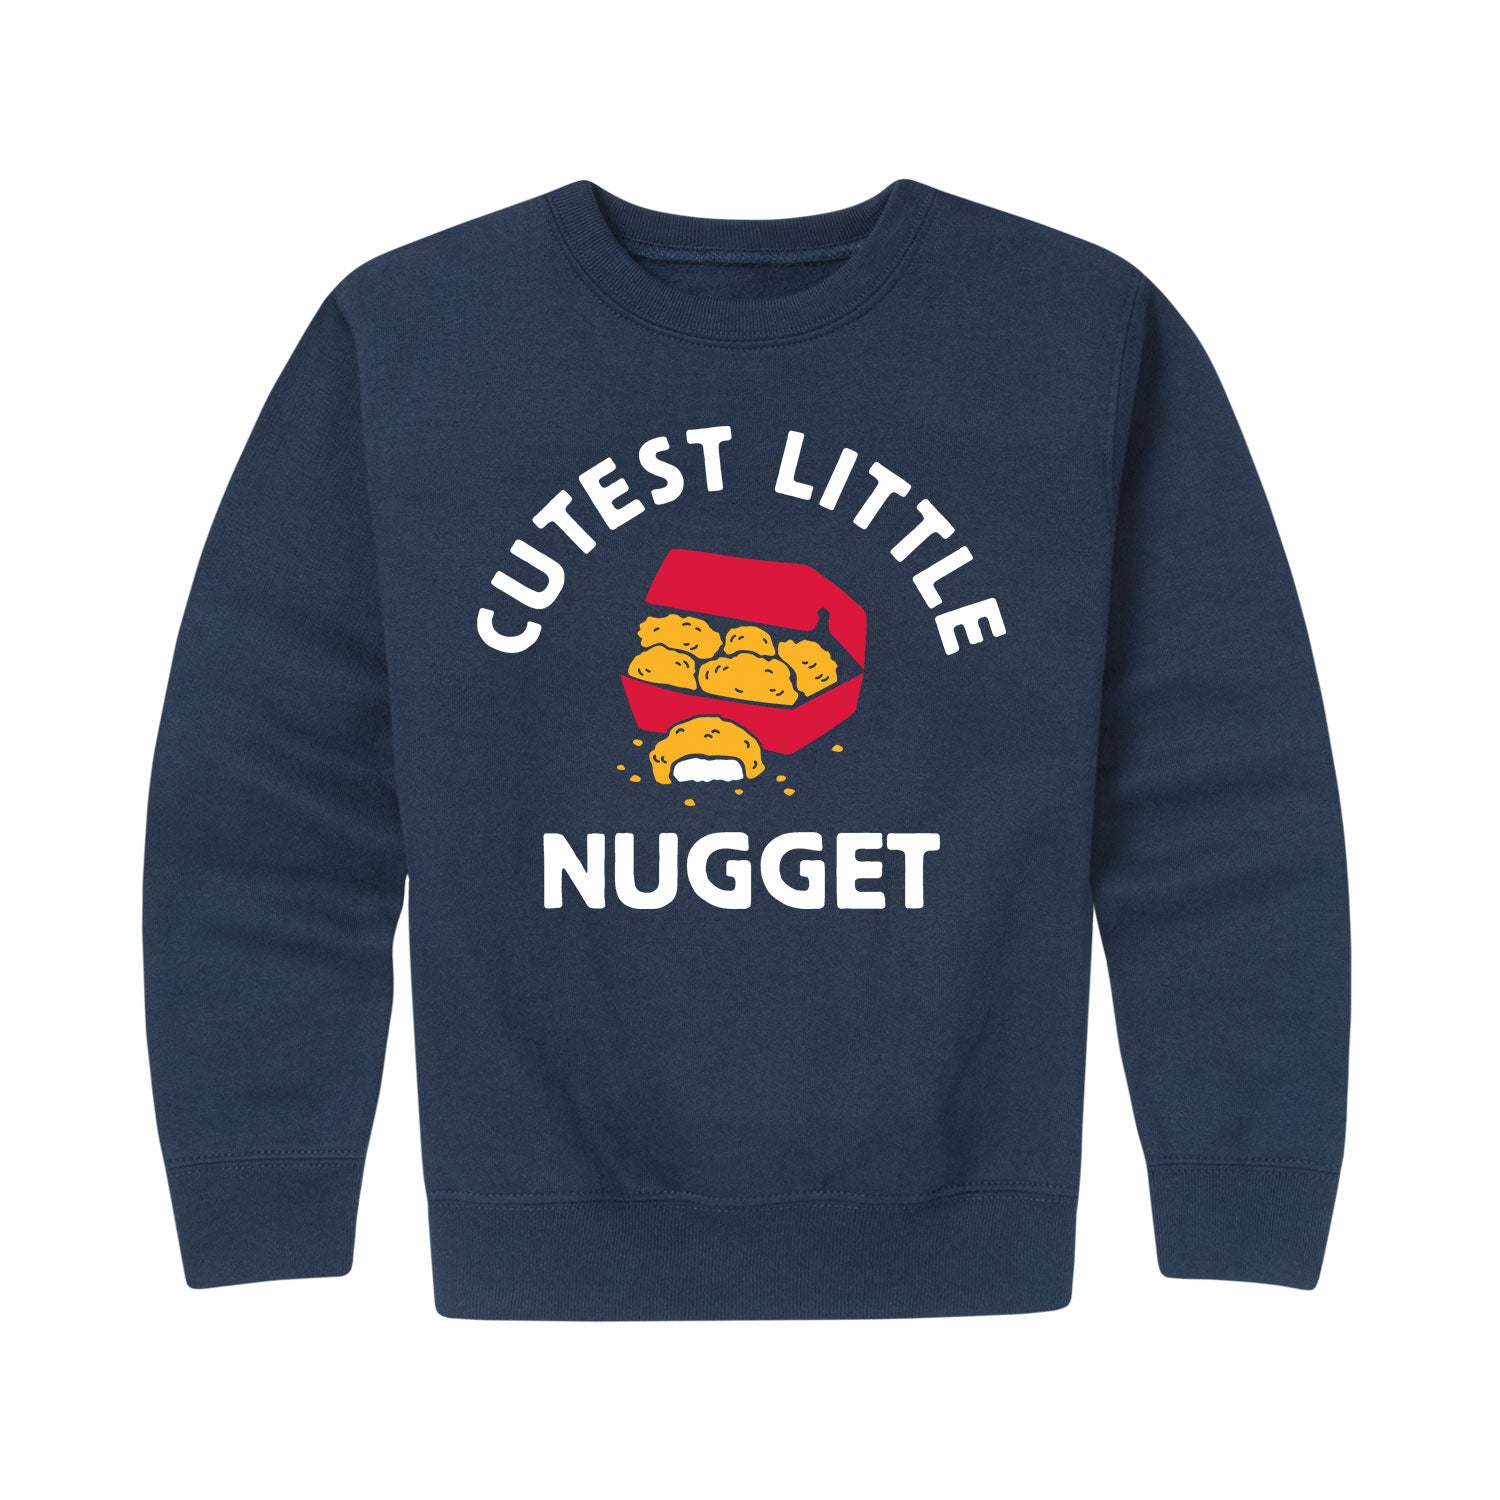 Cutest Little Nugget - Youth & Toddler Crew Neck Fleece